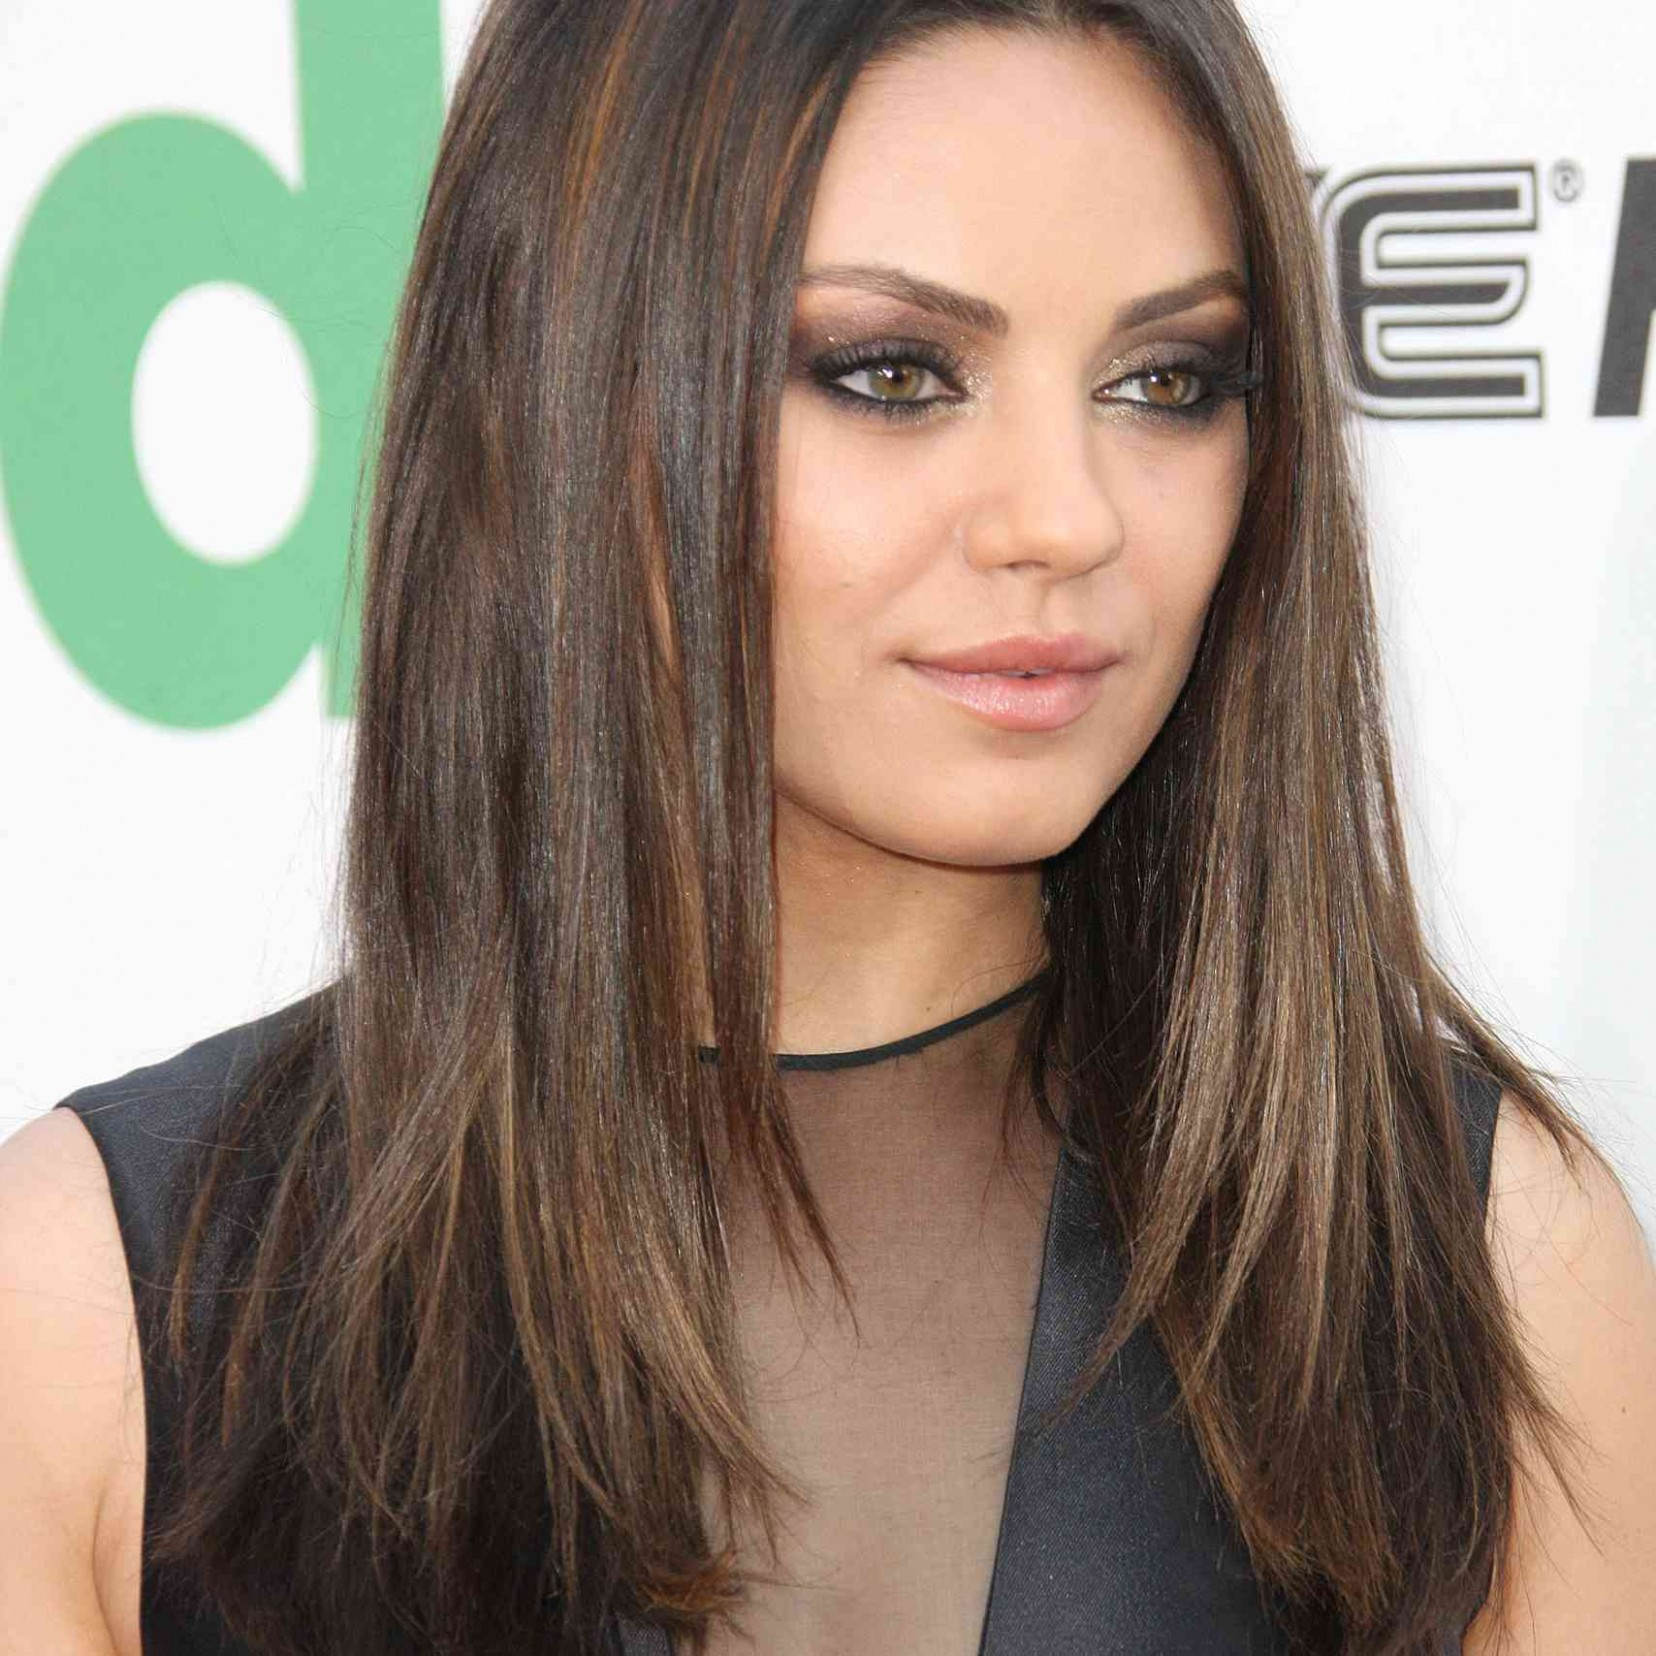 10 Of The Best Hairstyles For Round Faces Shoulder Length Hair For Round Face